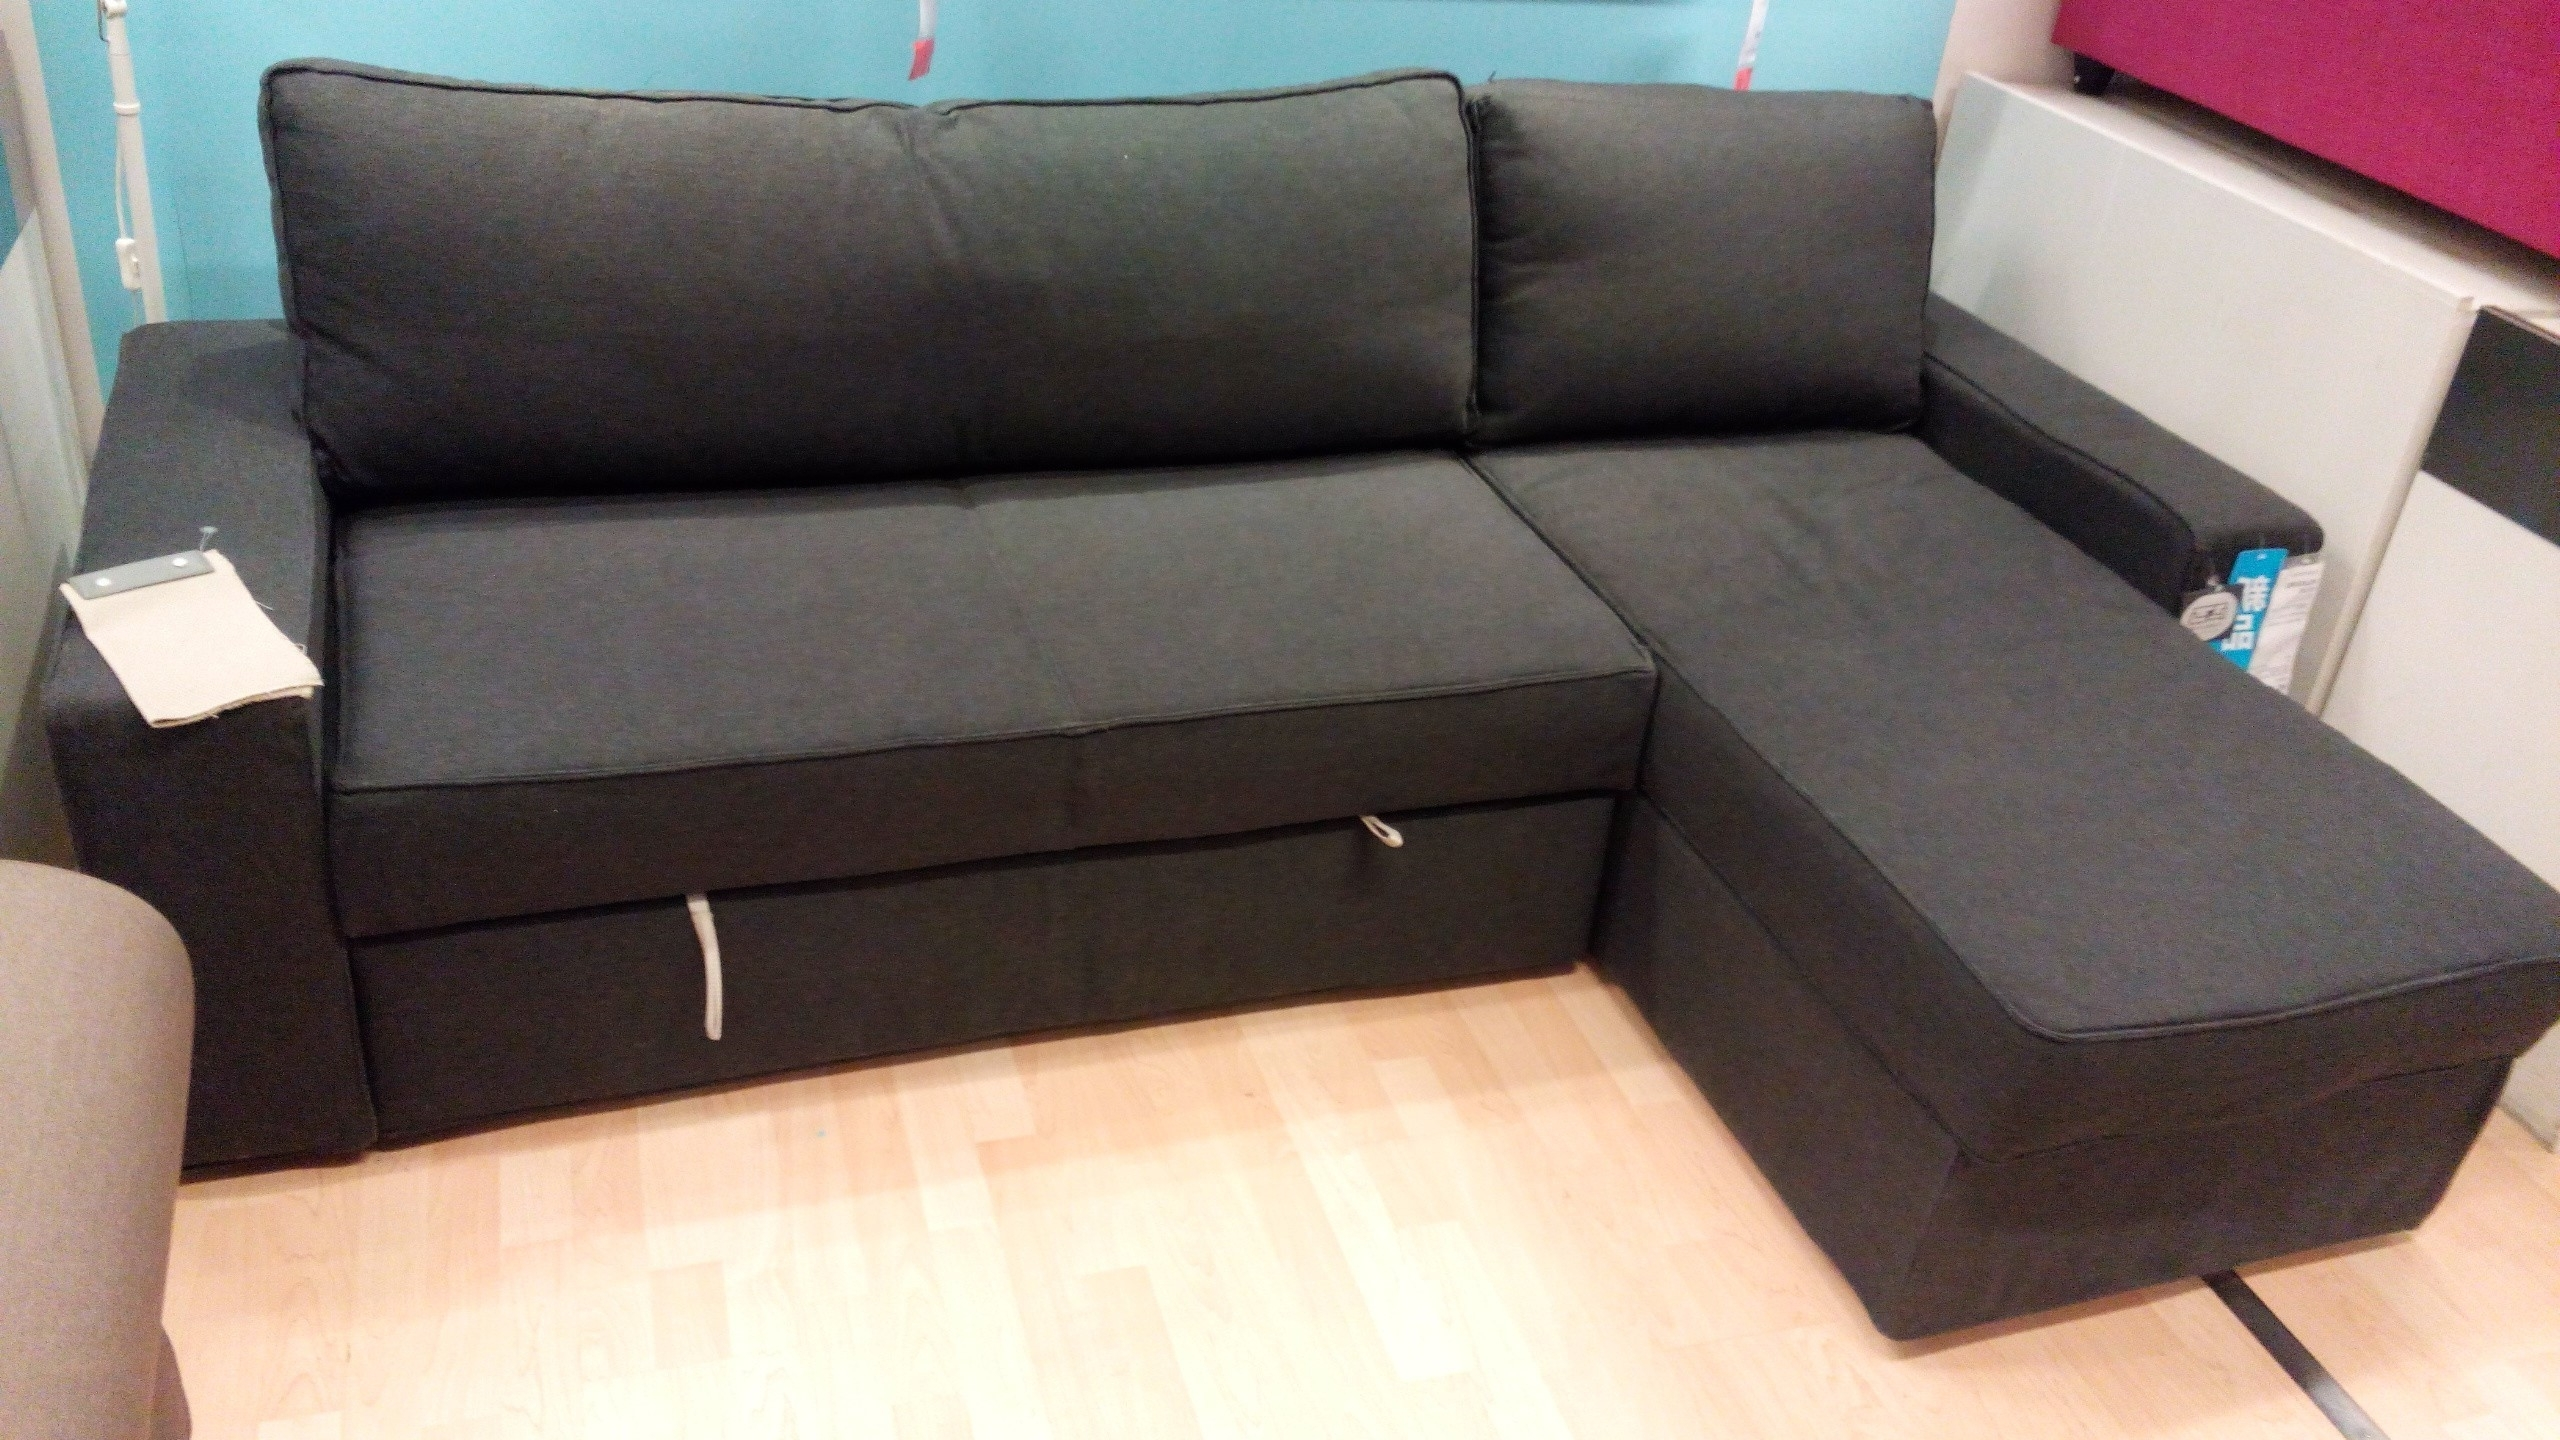 Most Recently Released Sleeper Sofas Ikea Amazing Sectional Sofa Perfect #20839 Cozy Within Sectional Sofas At Ikea (View 6 of 15)